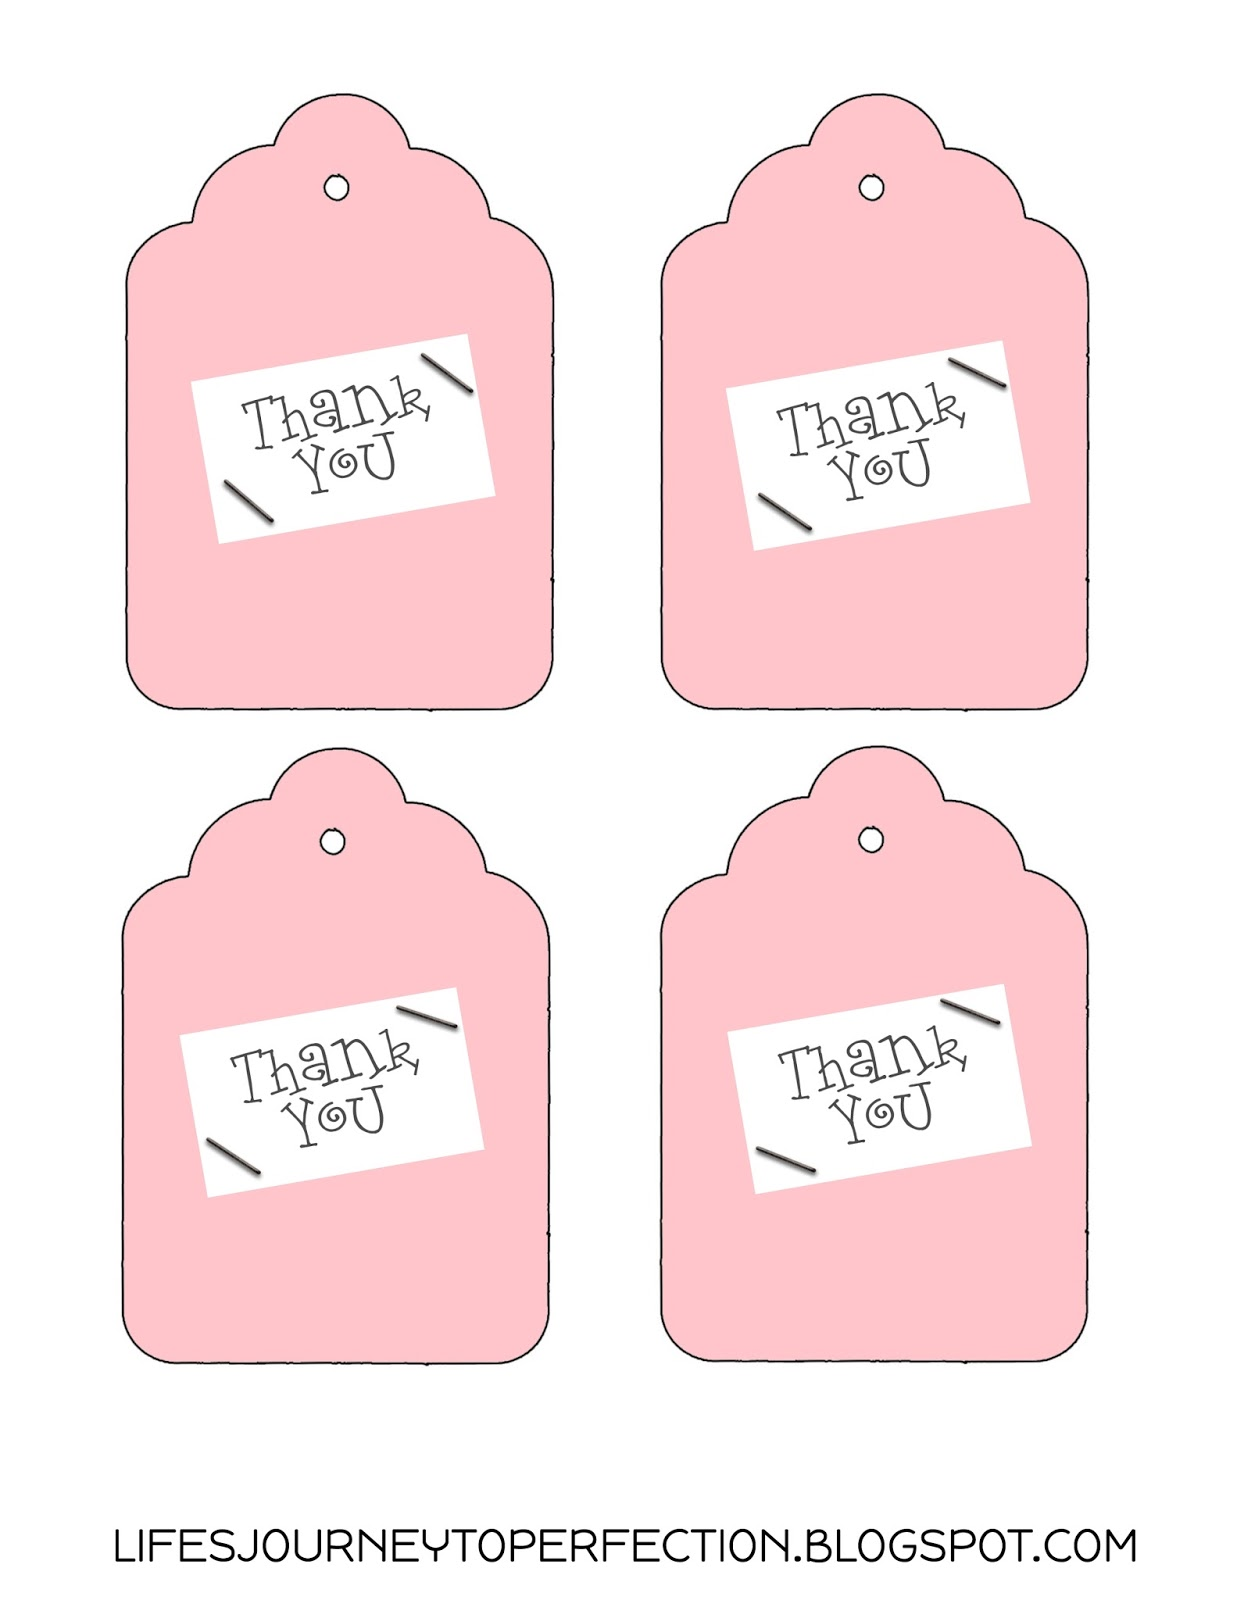 ... Journey To Perfection: Thank You Gift Idea and Free Tags Printable